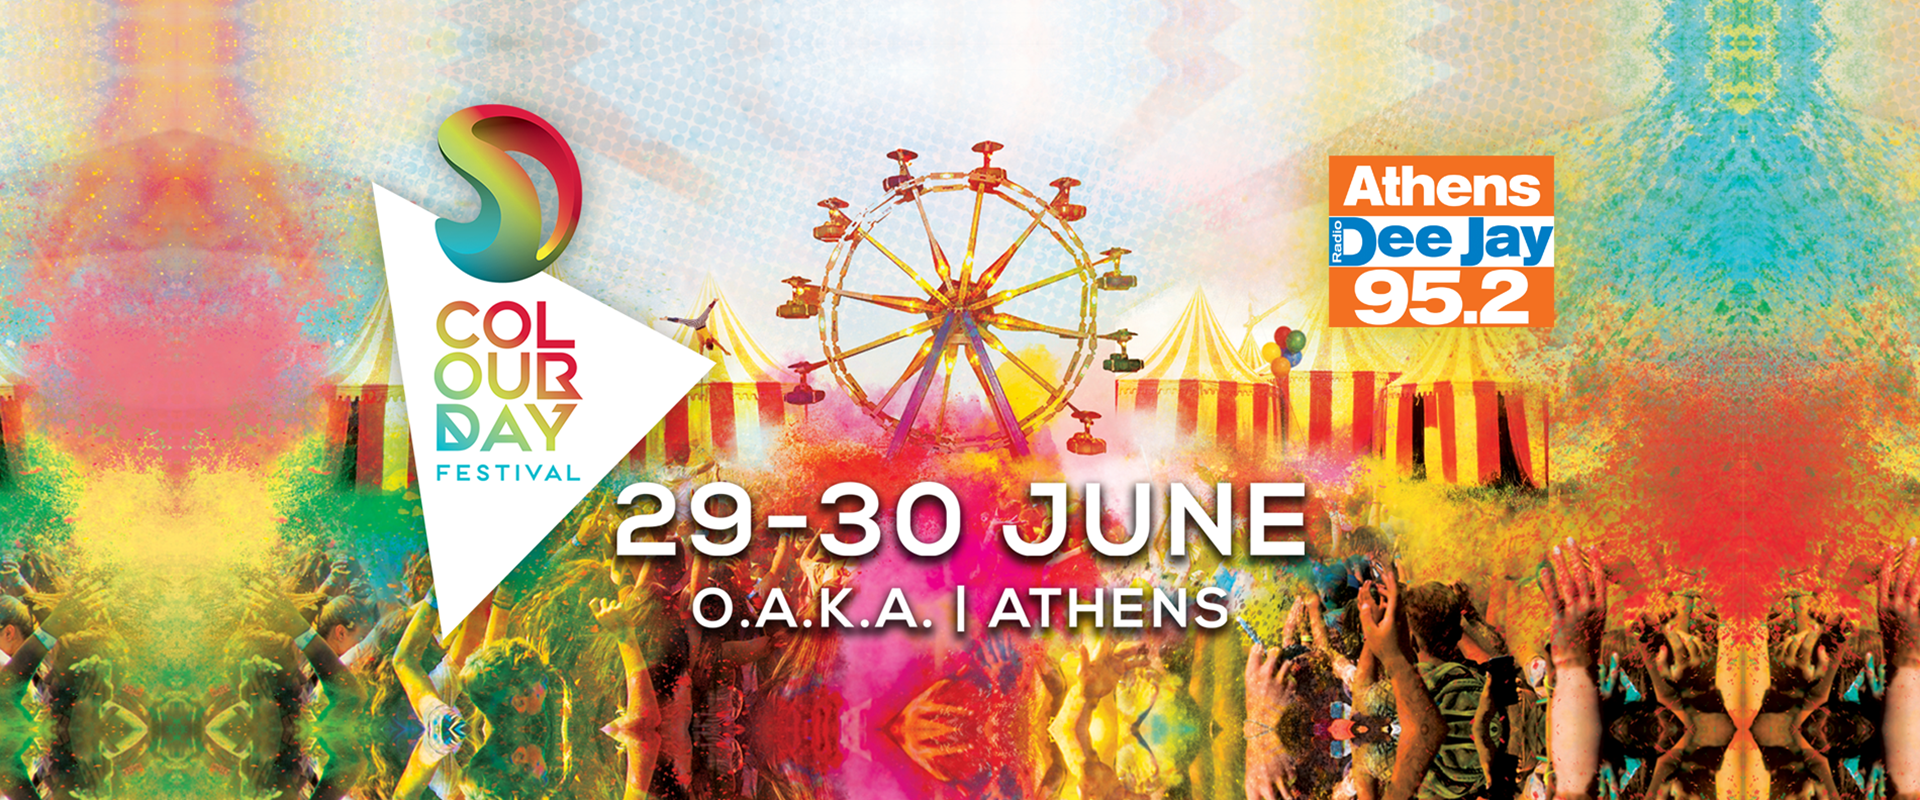 Colour Day Festival - The Circus Project: Το απόλυτο καλοκαιρινό φεστιβάλ με τον 95.2 Athens Deejay